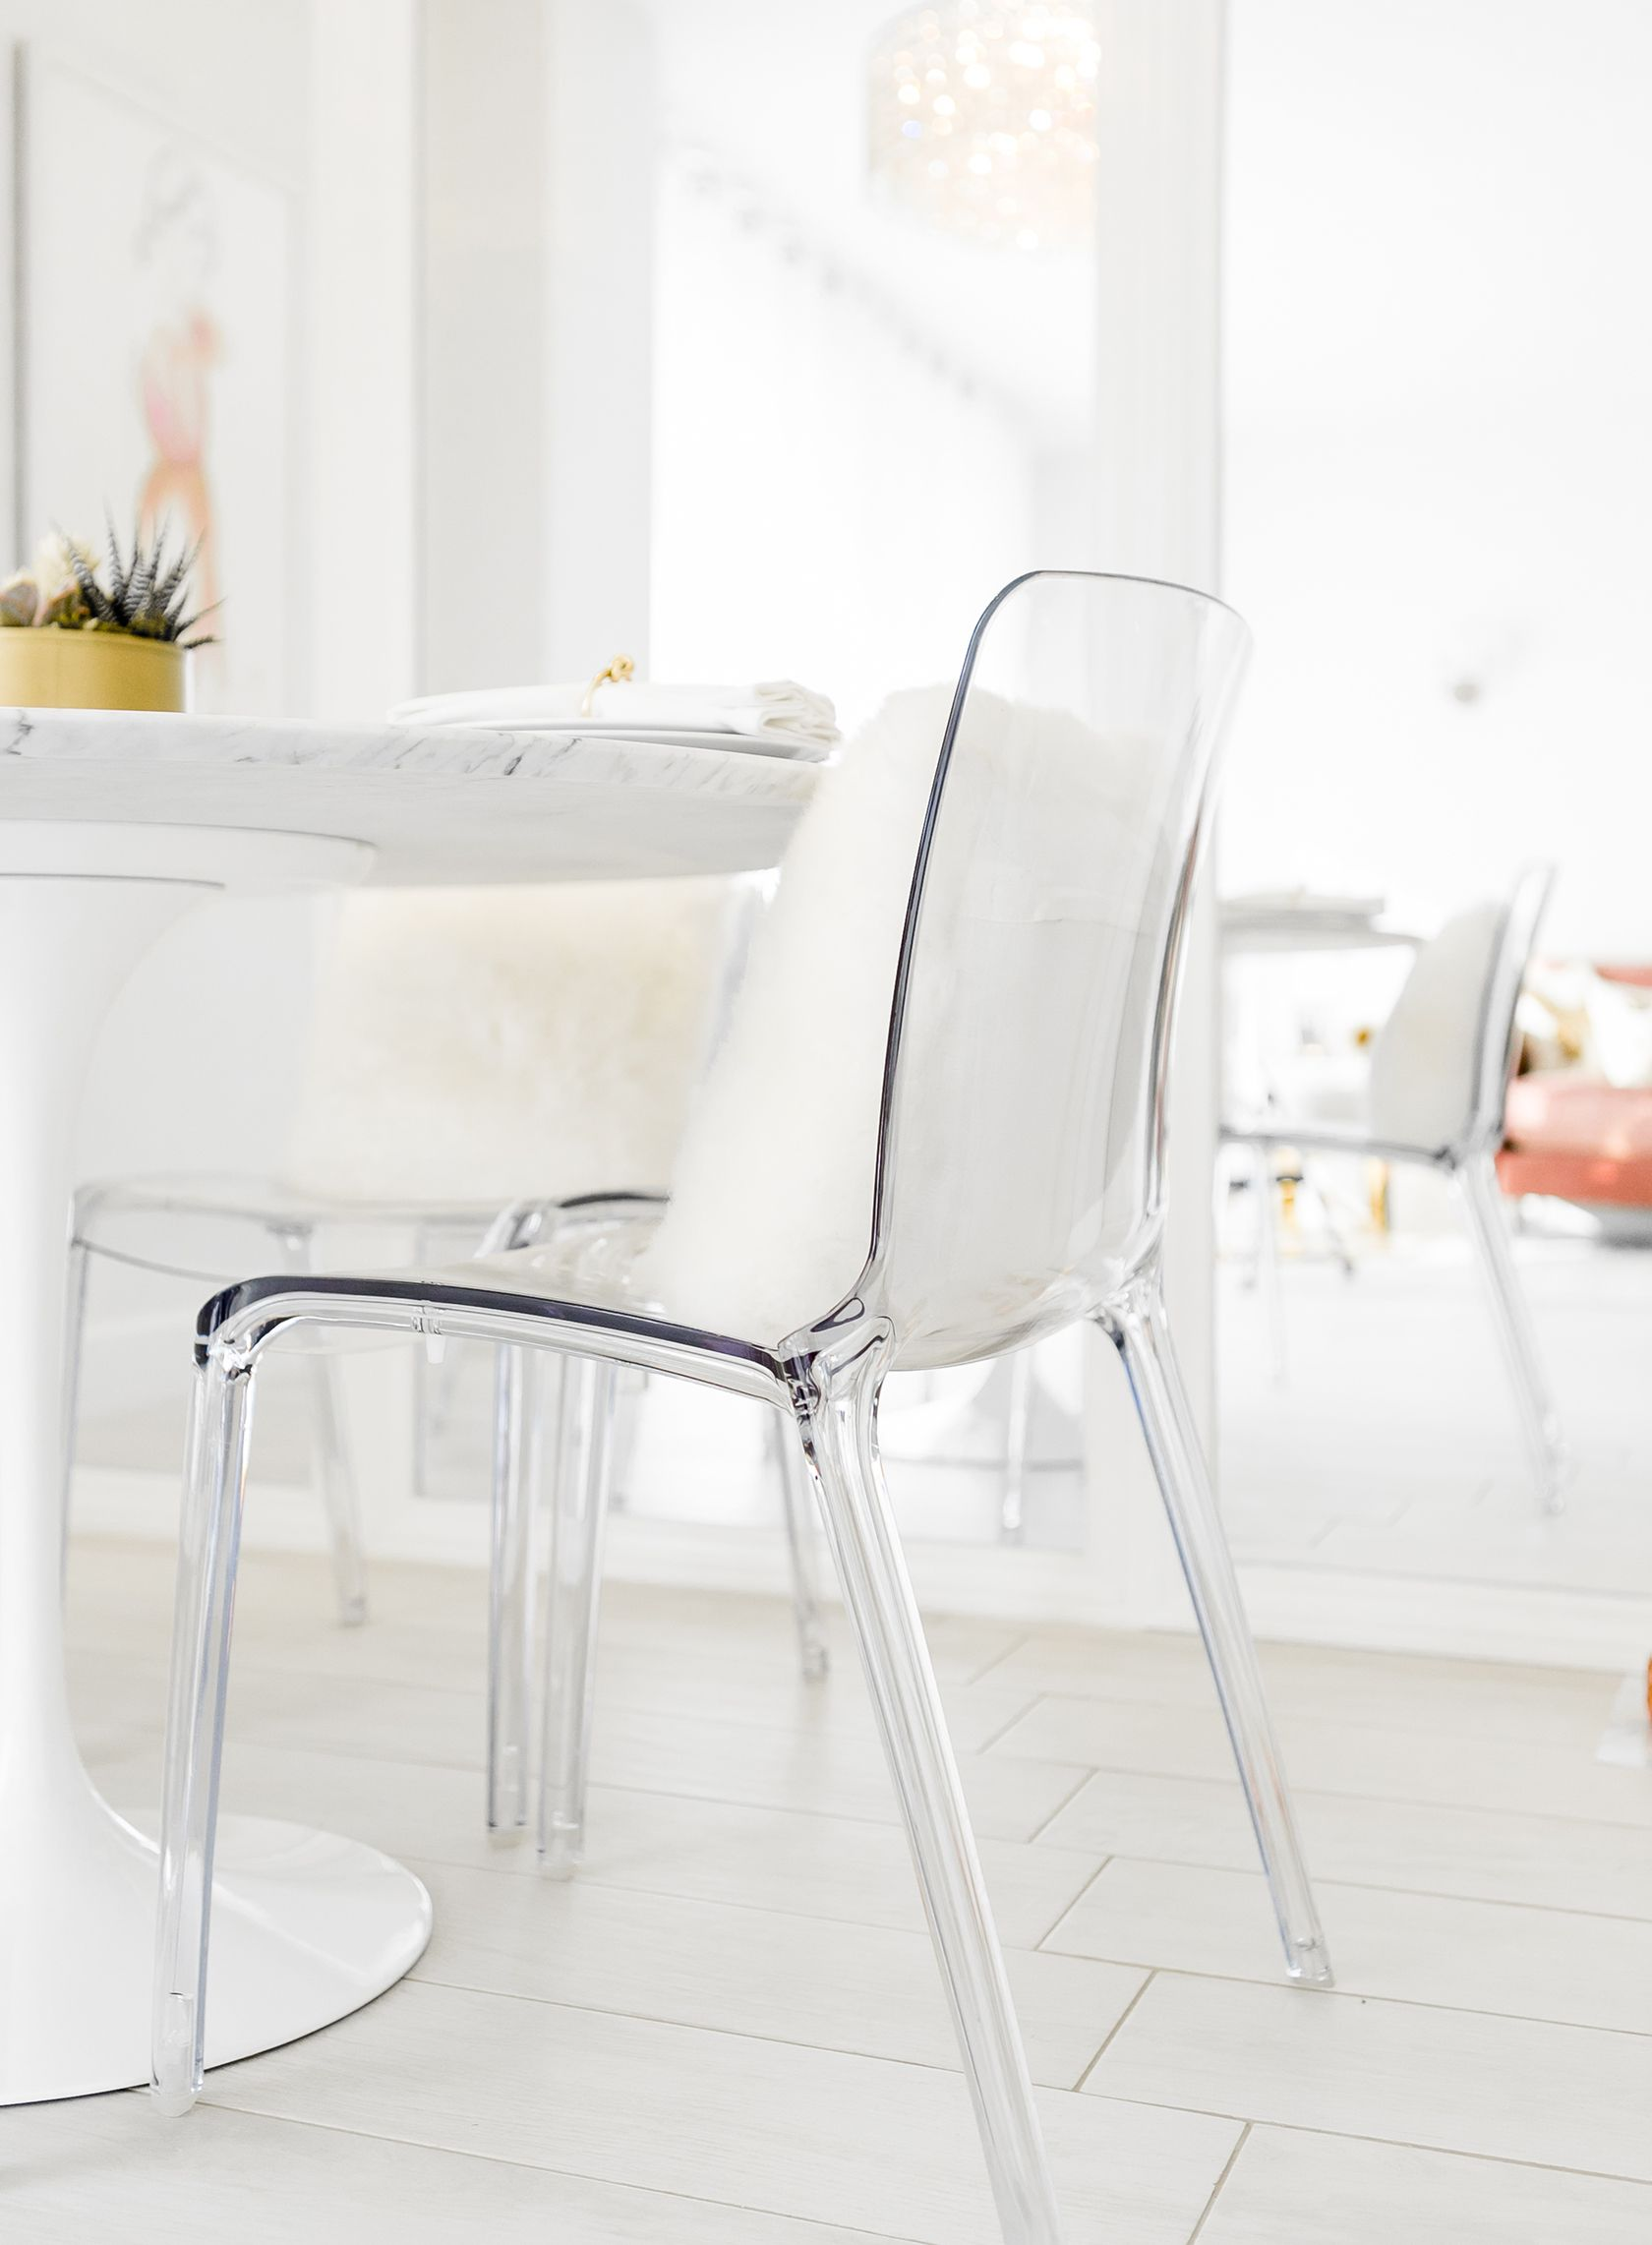 Sydne Style Shows Luxe Dining Room Decor Ideas With Room & Board Stunning White Dining Room Chairs Modern Inspiration